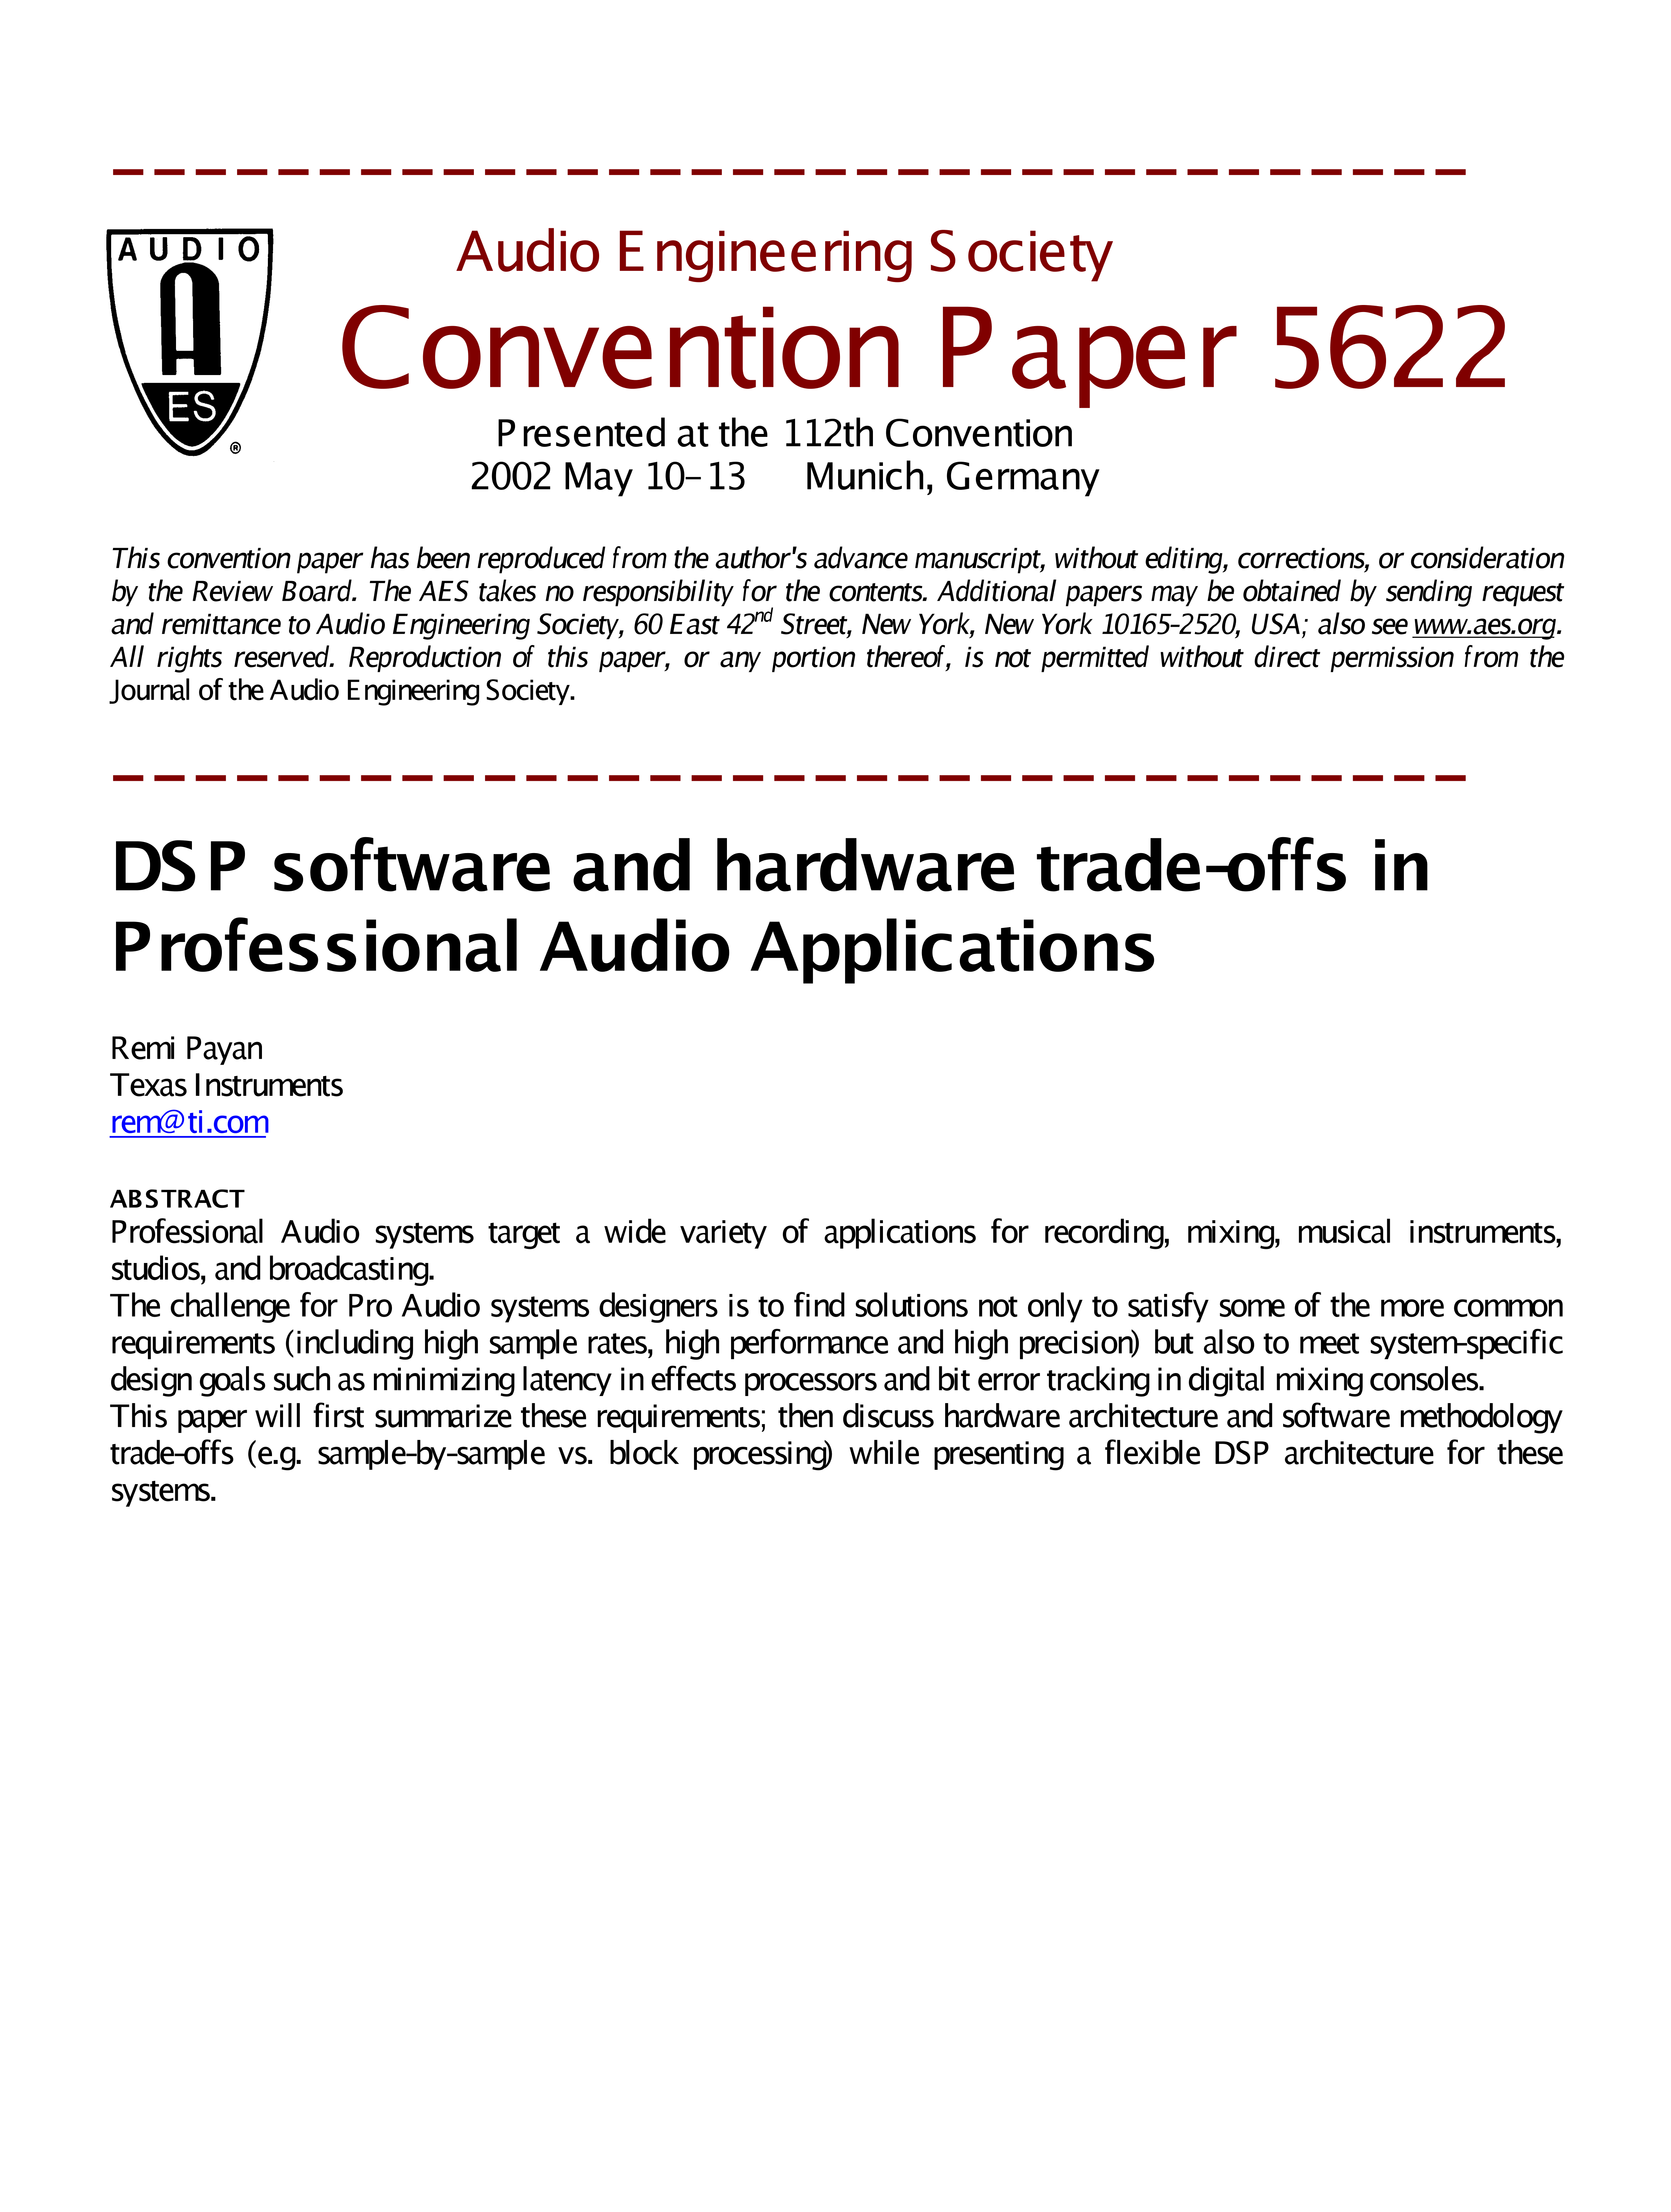 AES E-Library » DSP Software and Hardware Trade-offs in Professional